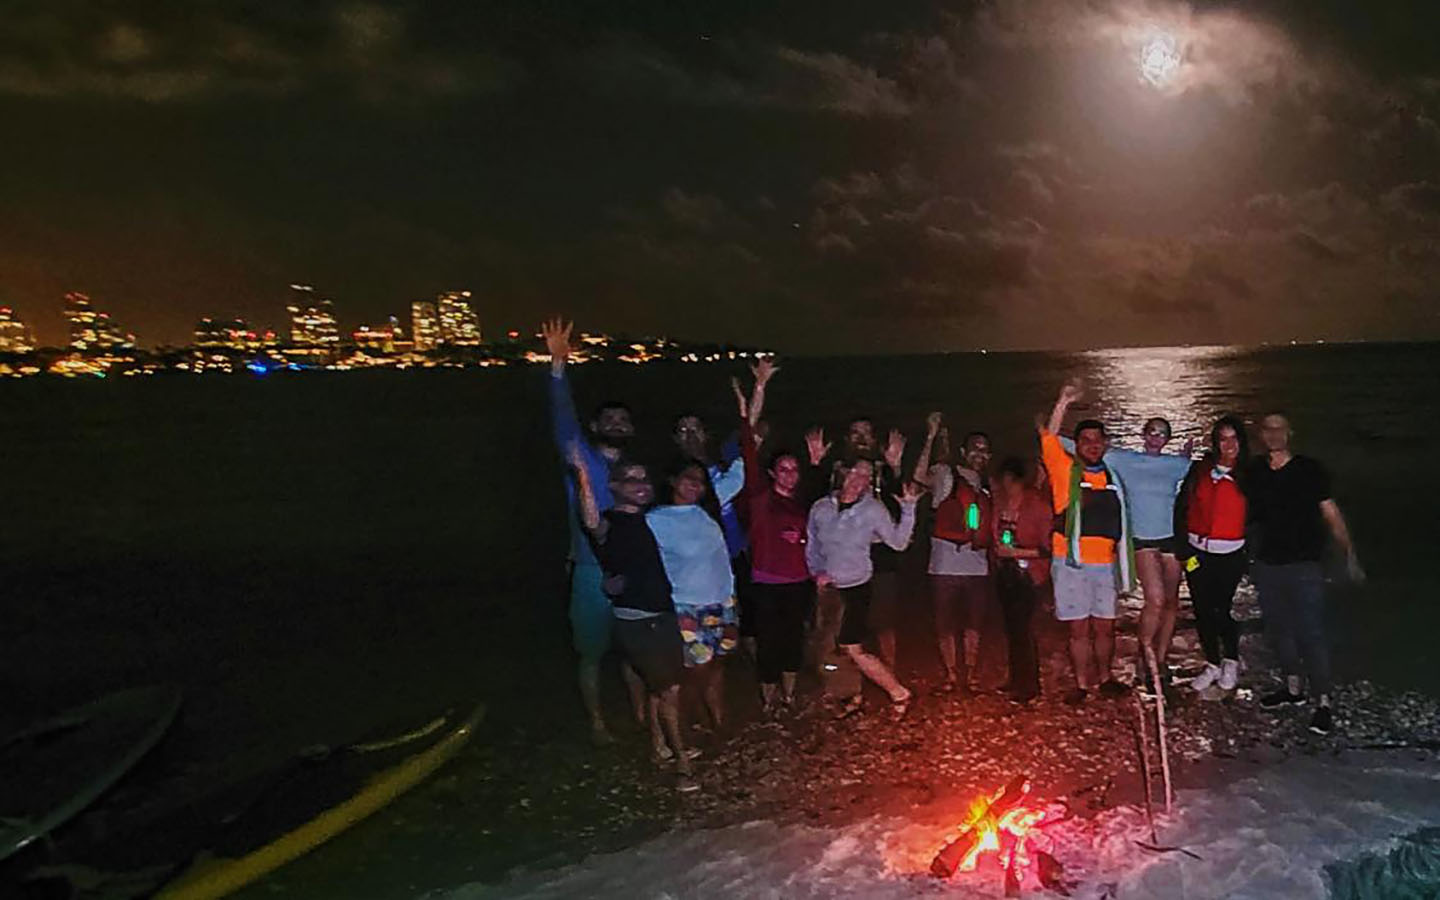 Full Moon Kayak & Paddleboard Tour - January 29th